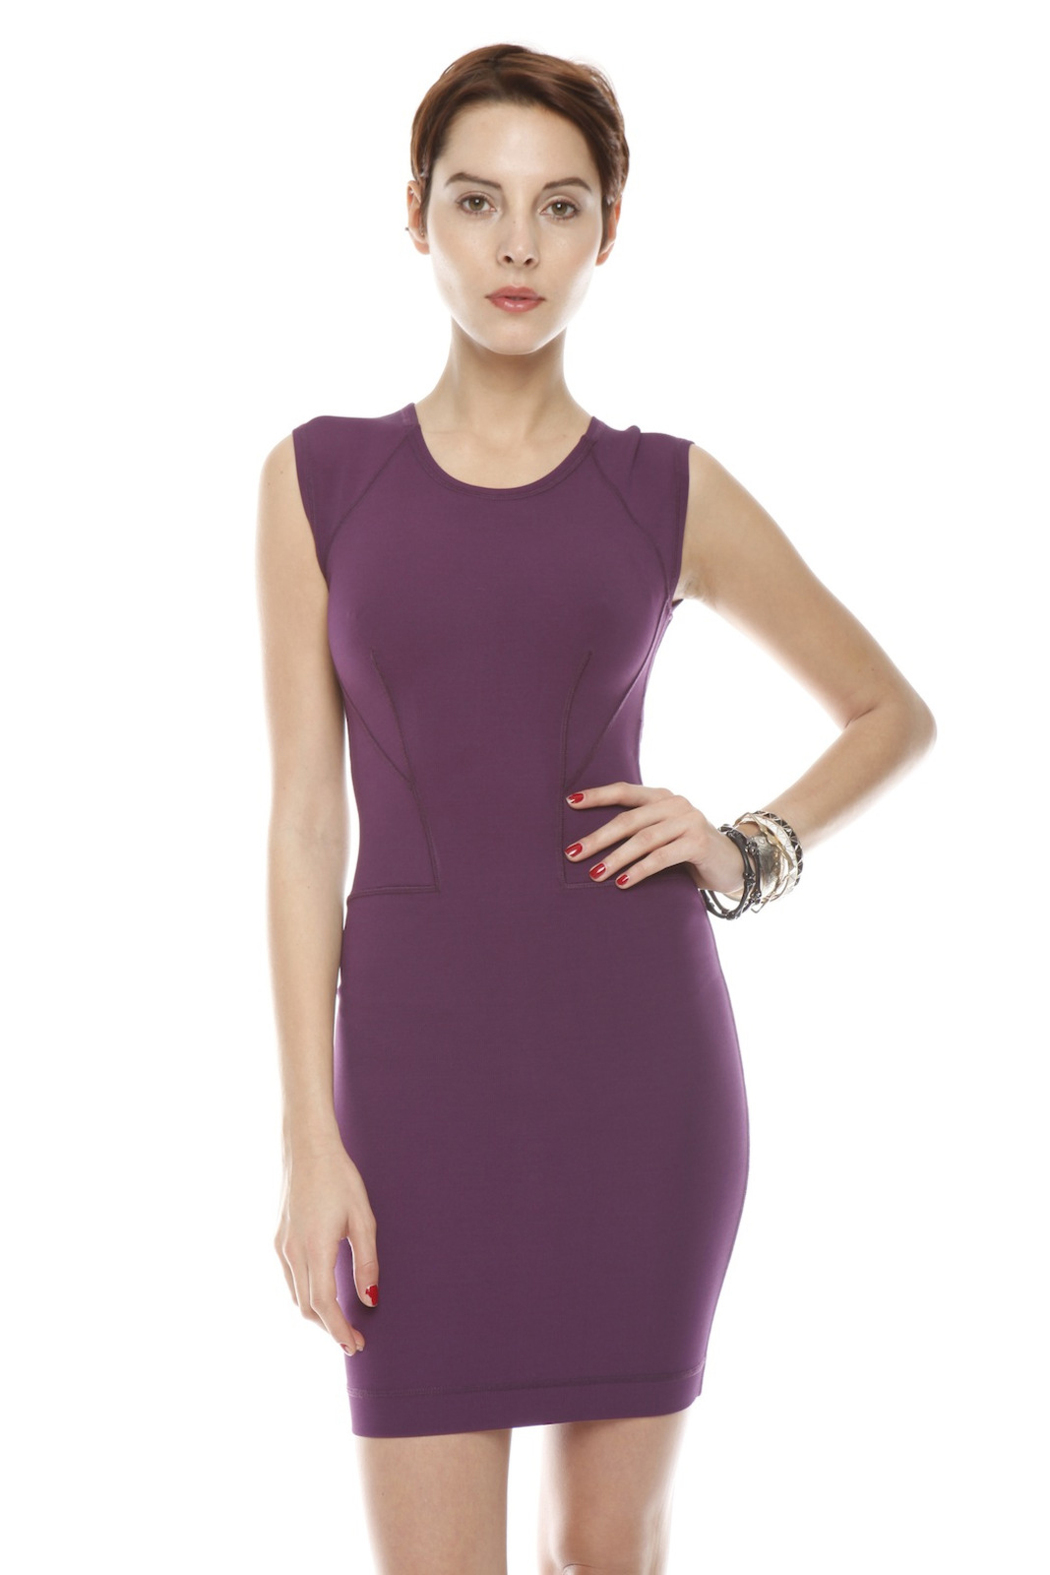 French connection purple bodycon dress from texas by confections french connection purple bodycon dress front cropped image ombrellifo Choice Image